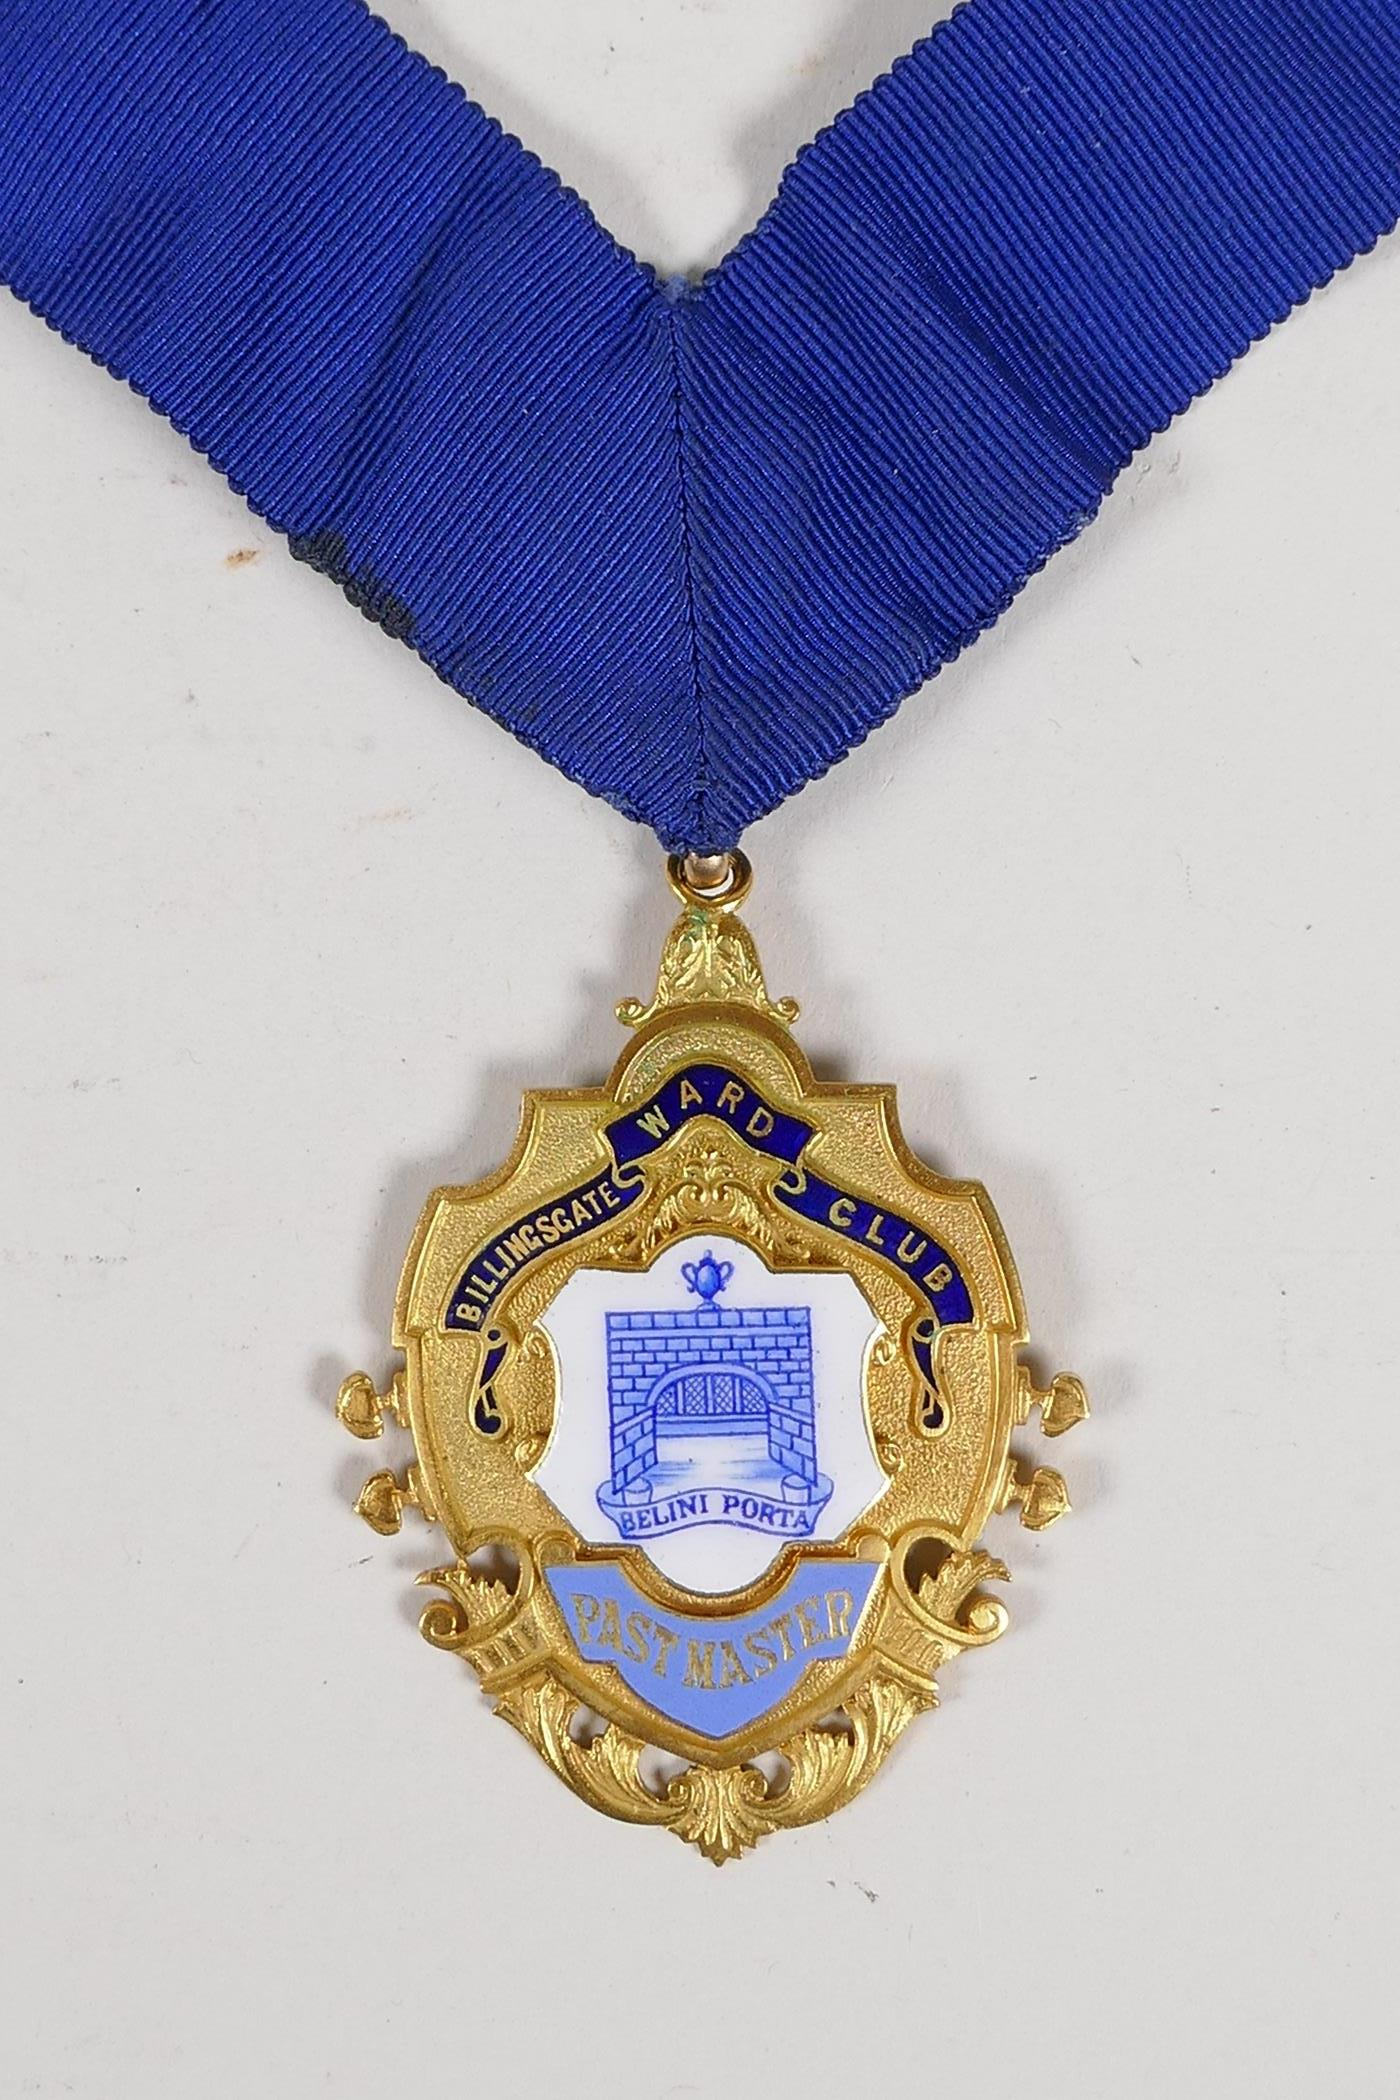 A 9ct gold and enamel medal for the position of Post Master of the Billingsgate Word Club, with